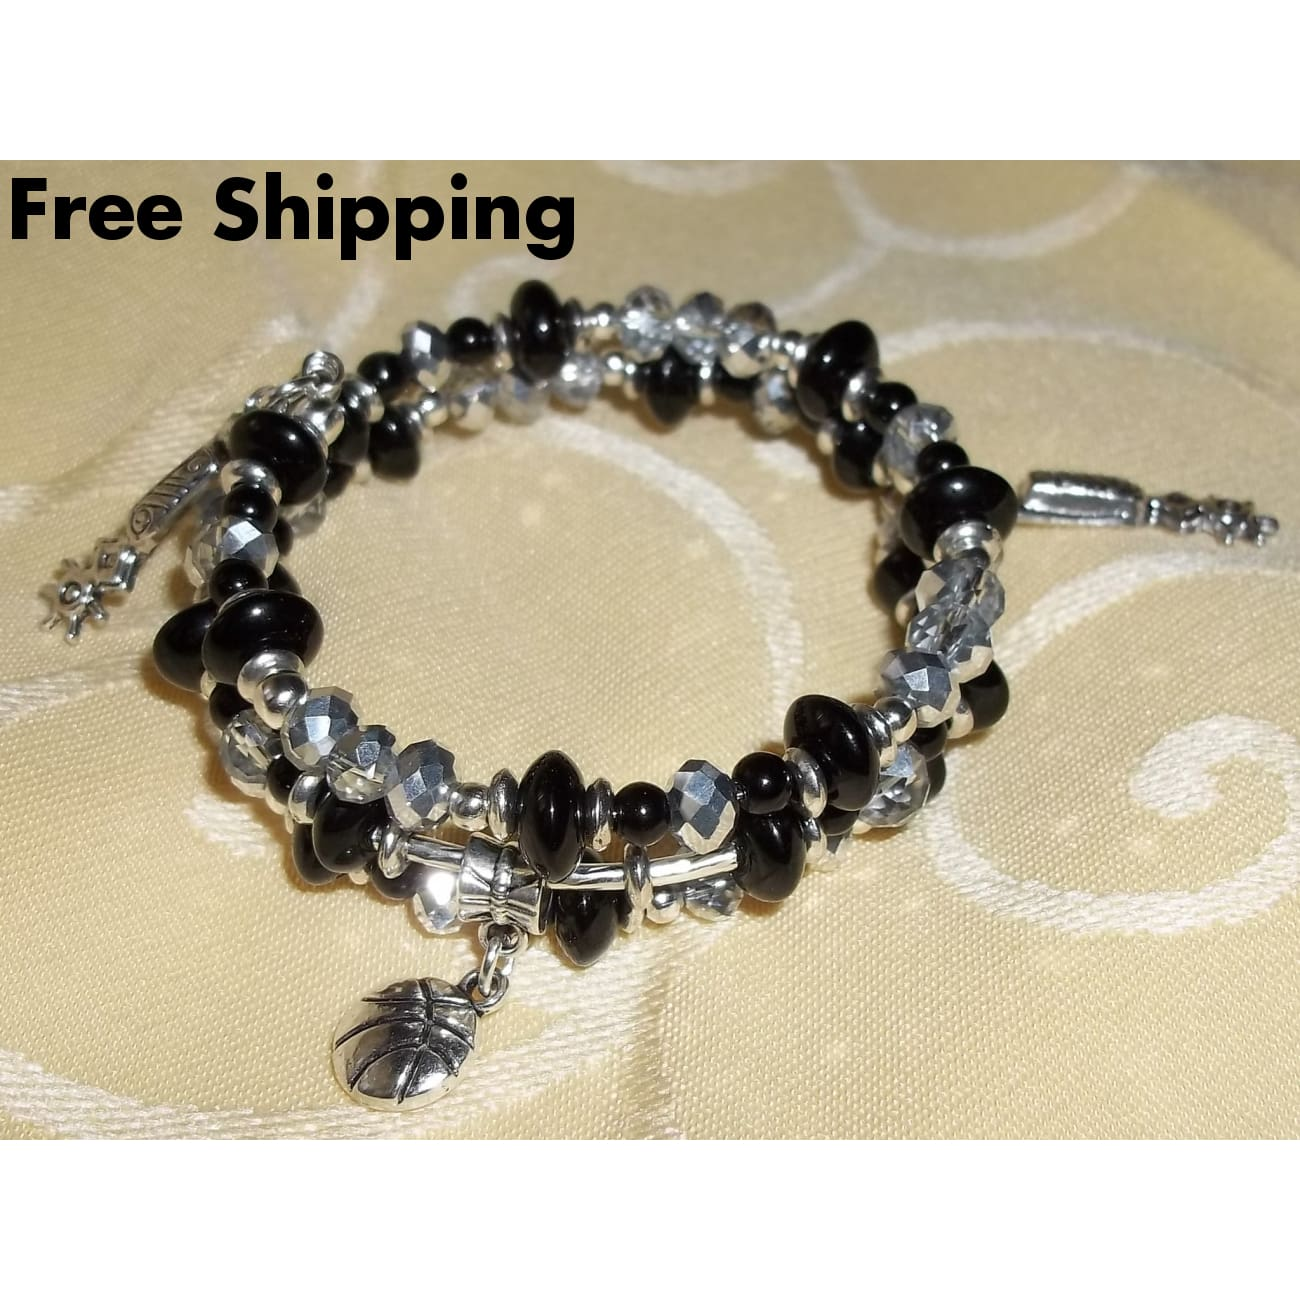 San Antonio Spurs Themed Black Onyx & Silver Swarovski Crystal Beaded Hand Crafted Wrap Bracelet - Bracelets